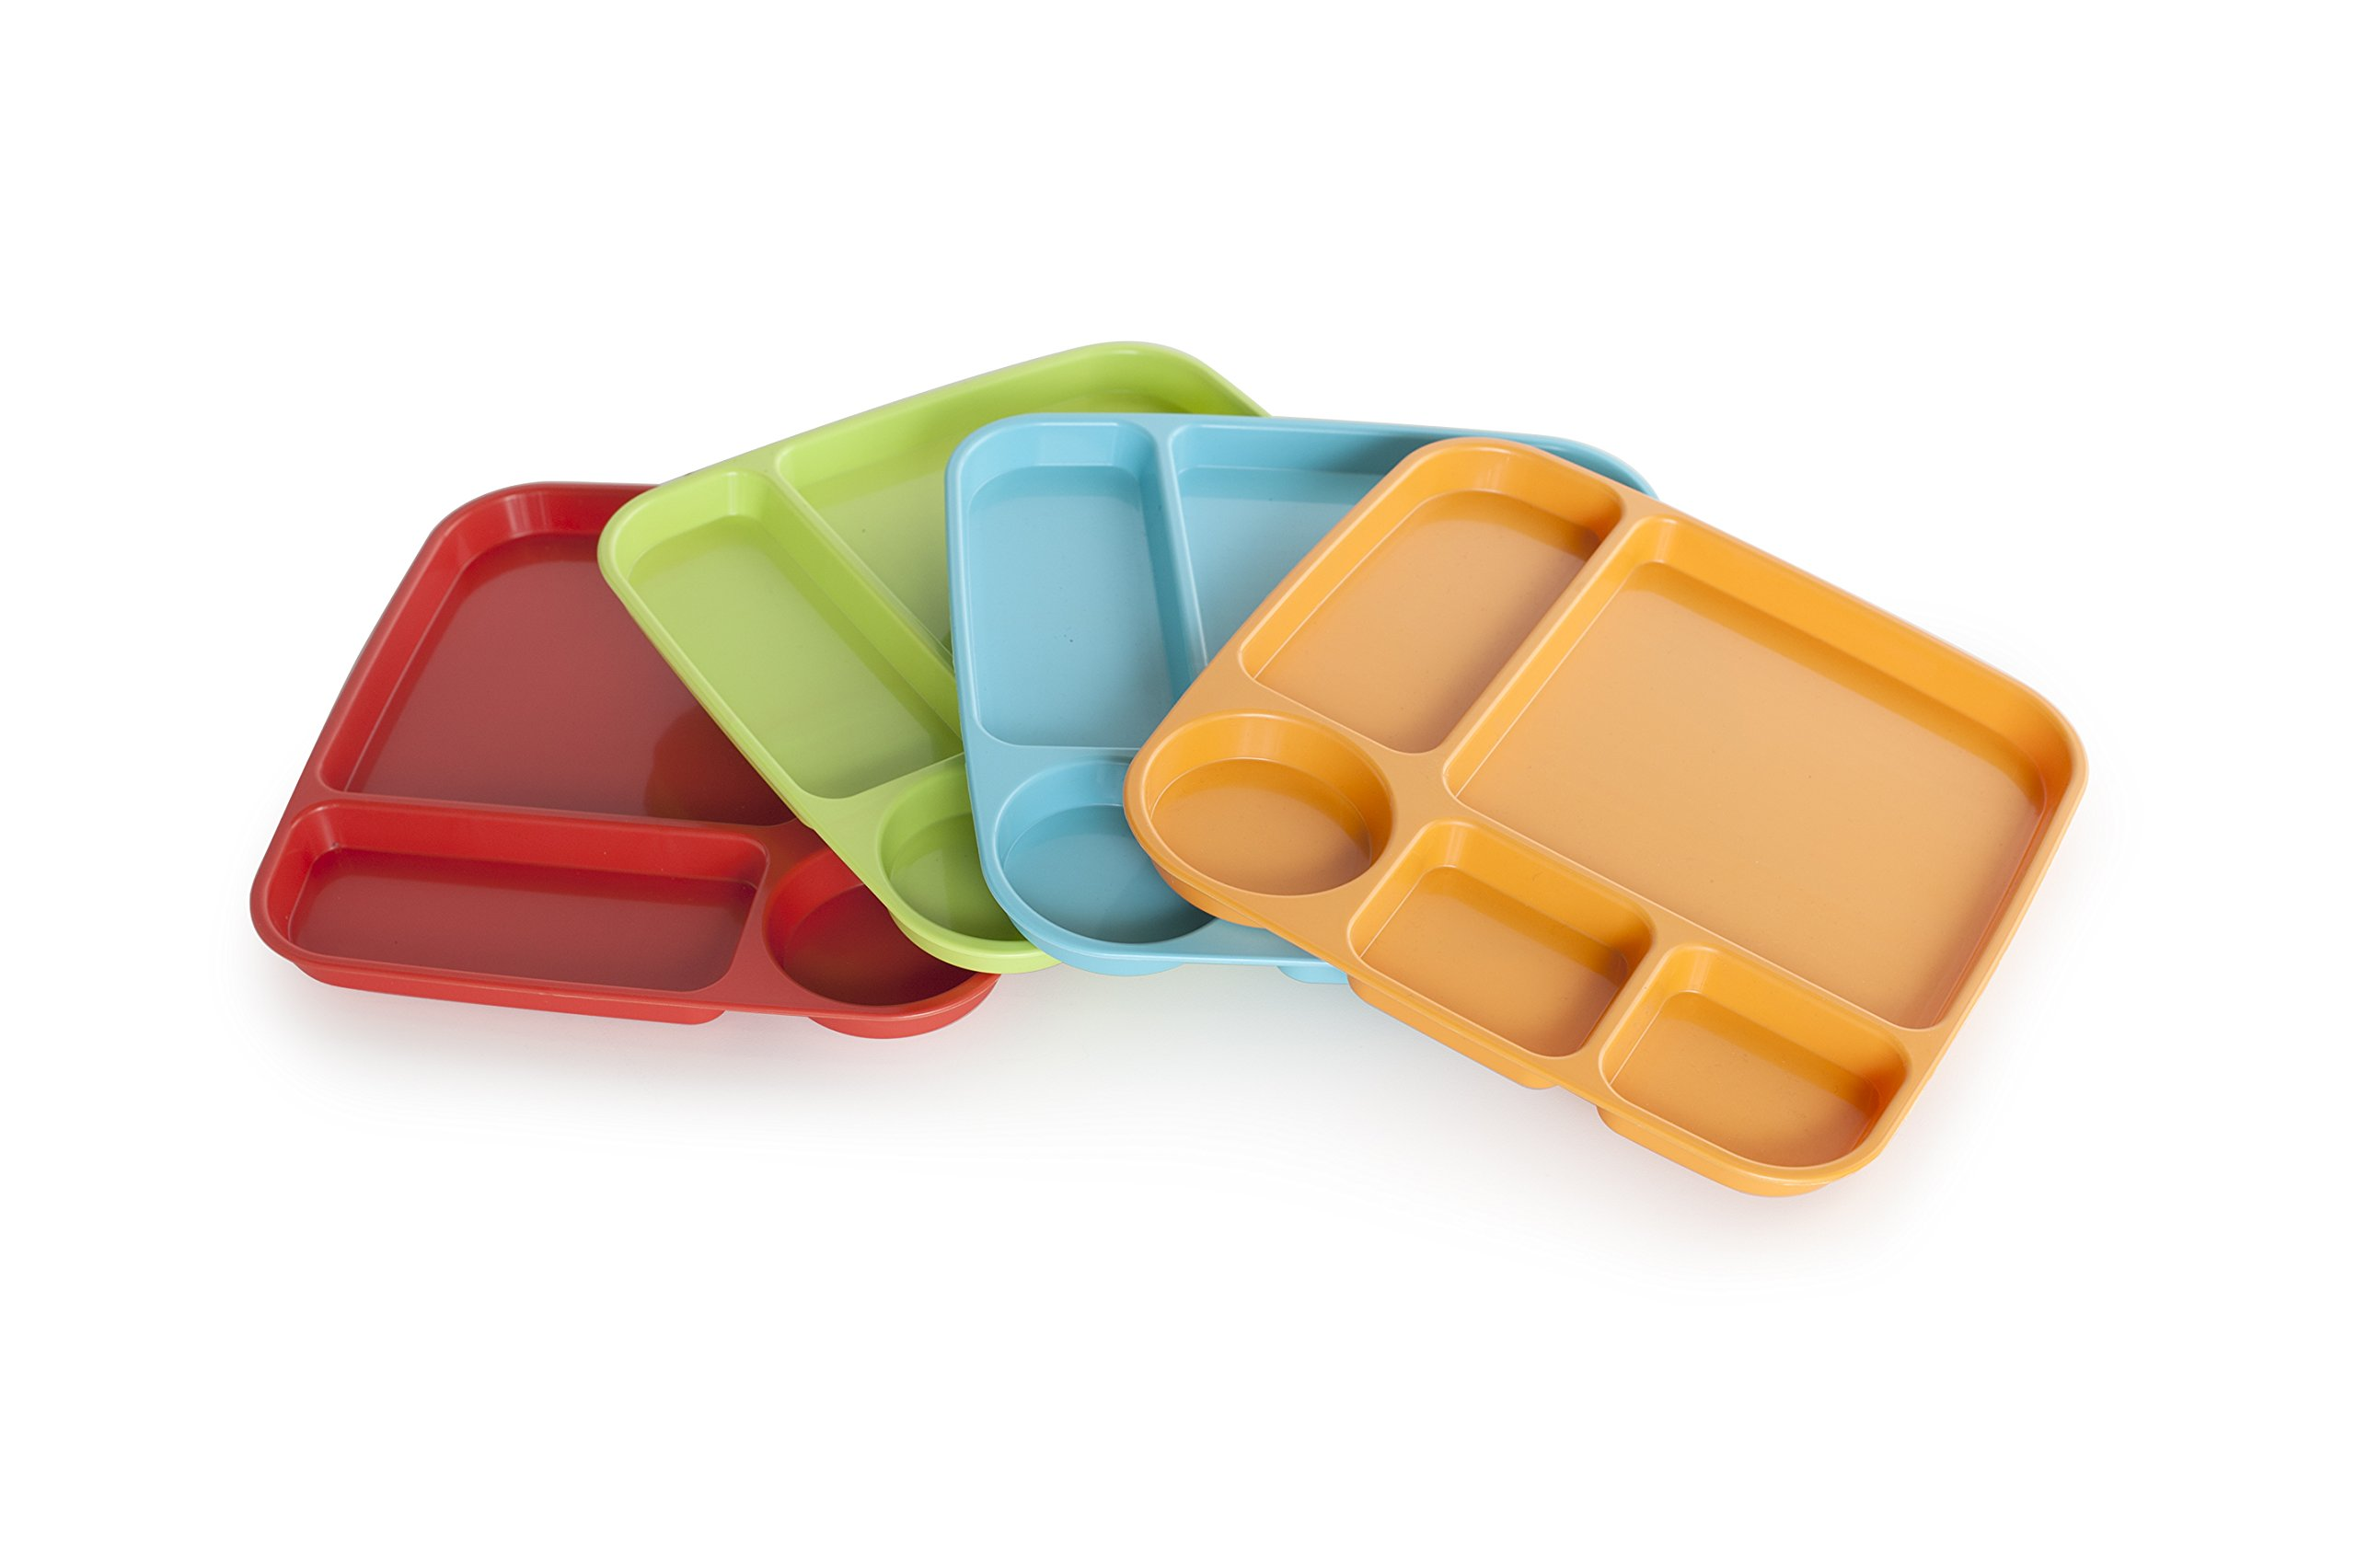 Nordic Ware 60155 Lightweight Party Tray, High-Heat Plastic, Assorted, 4 Piece, Fiesta Colors by Nordic Ware